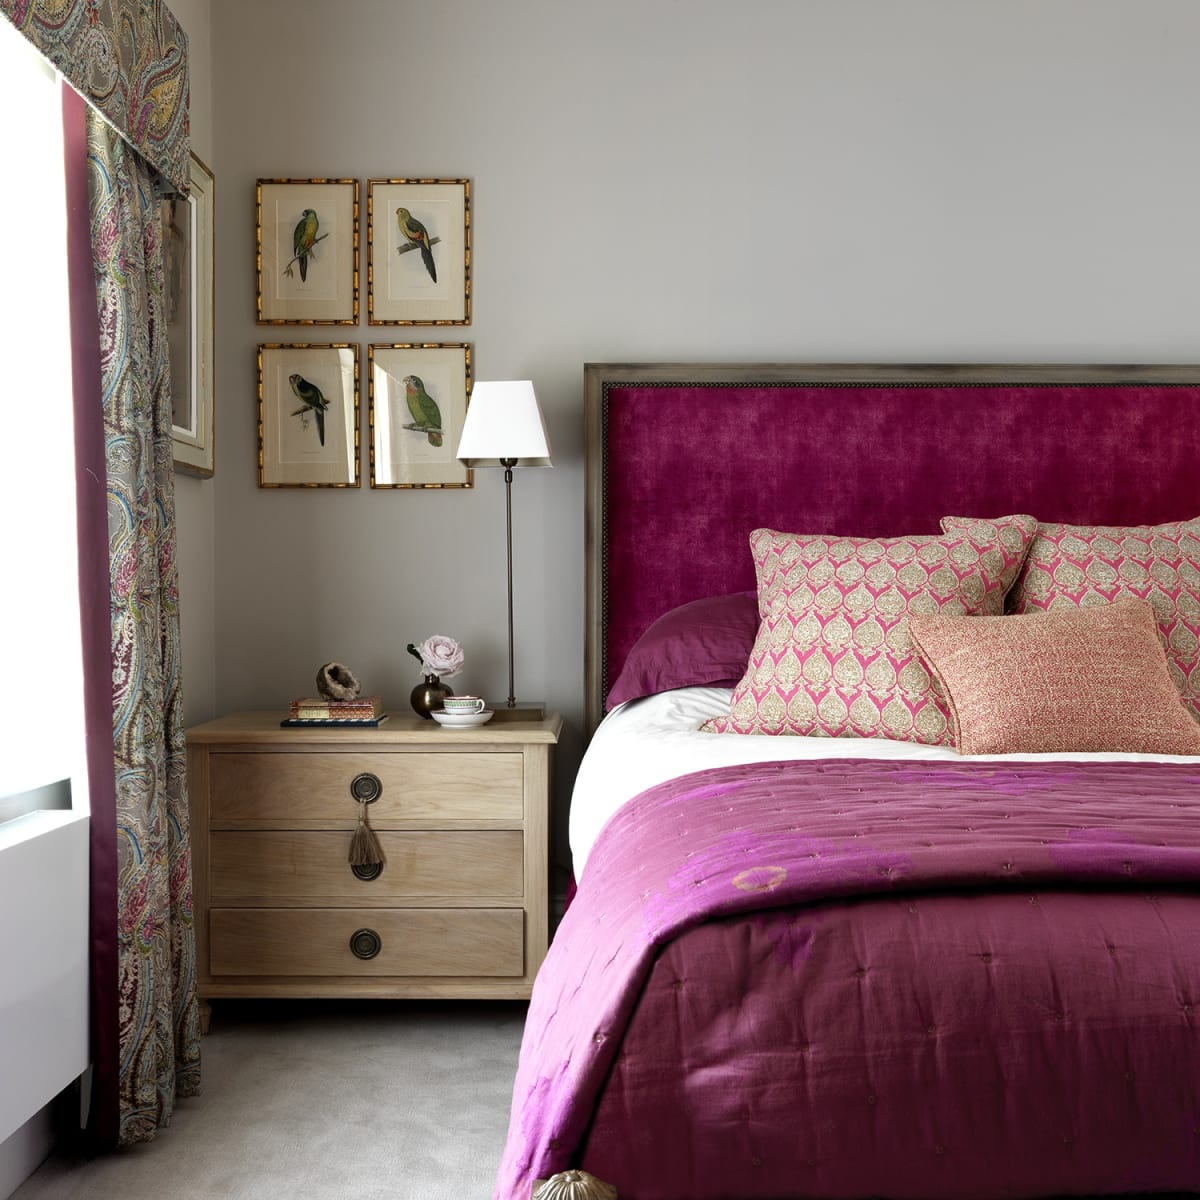 Vintage parrot prints sourced for a Nina Campbell styled bedroom